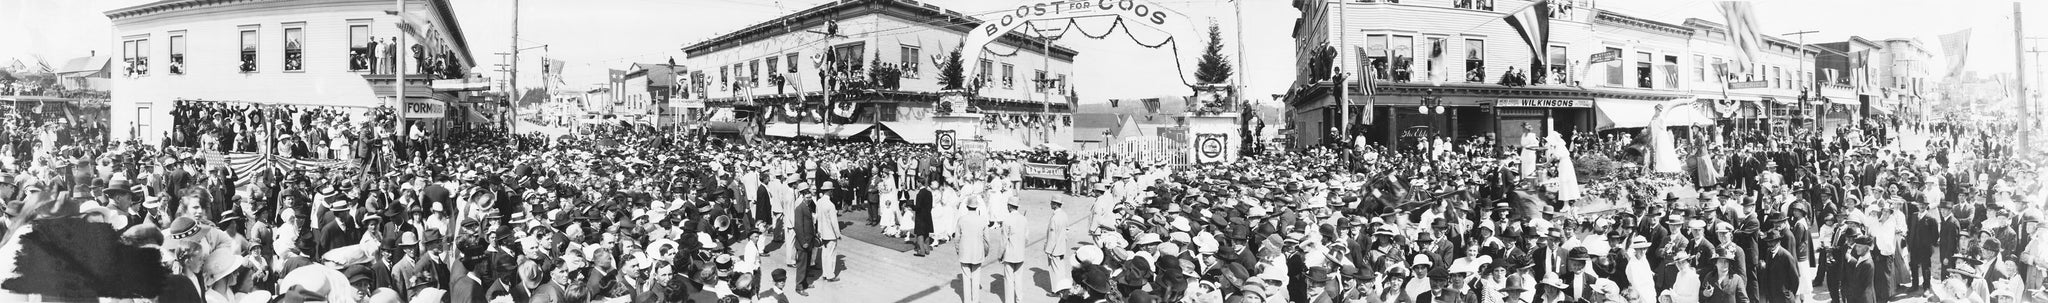 Wedding of Miss Coos Bay to Mr. Eugene Lane during the Railroad Jubilee, August 1916. -- Courtesy Coos History Museum & Maritime Collection / #008-31.2